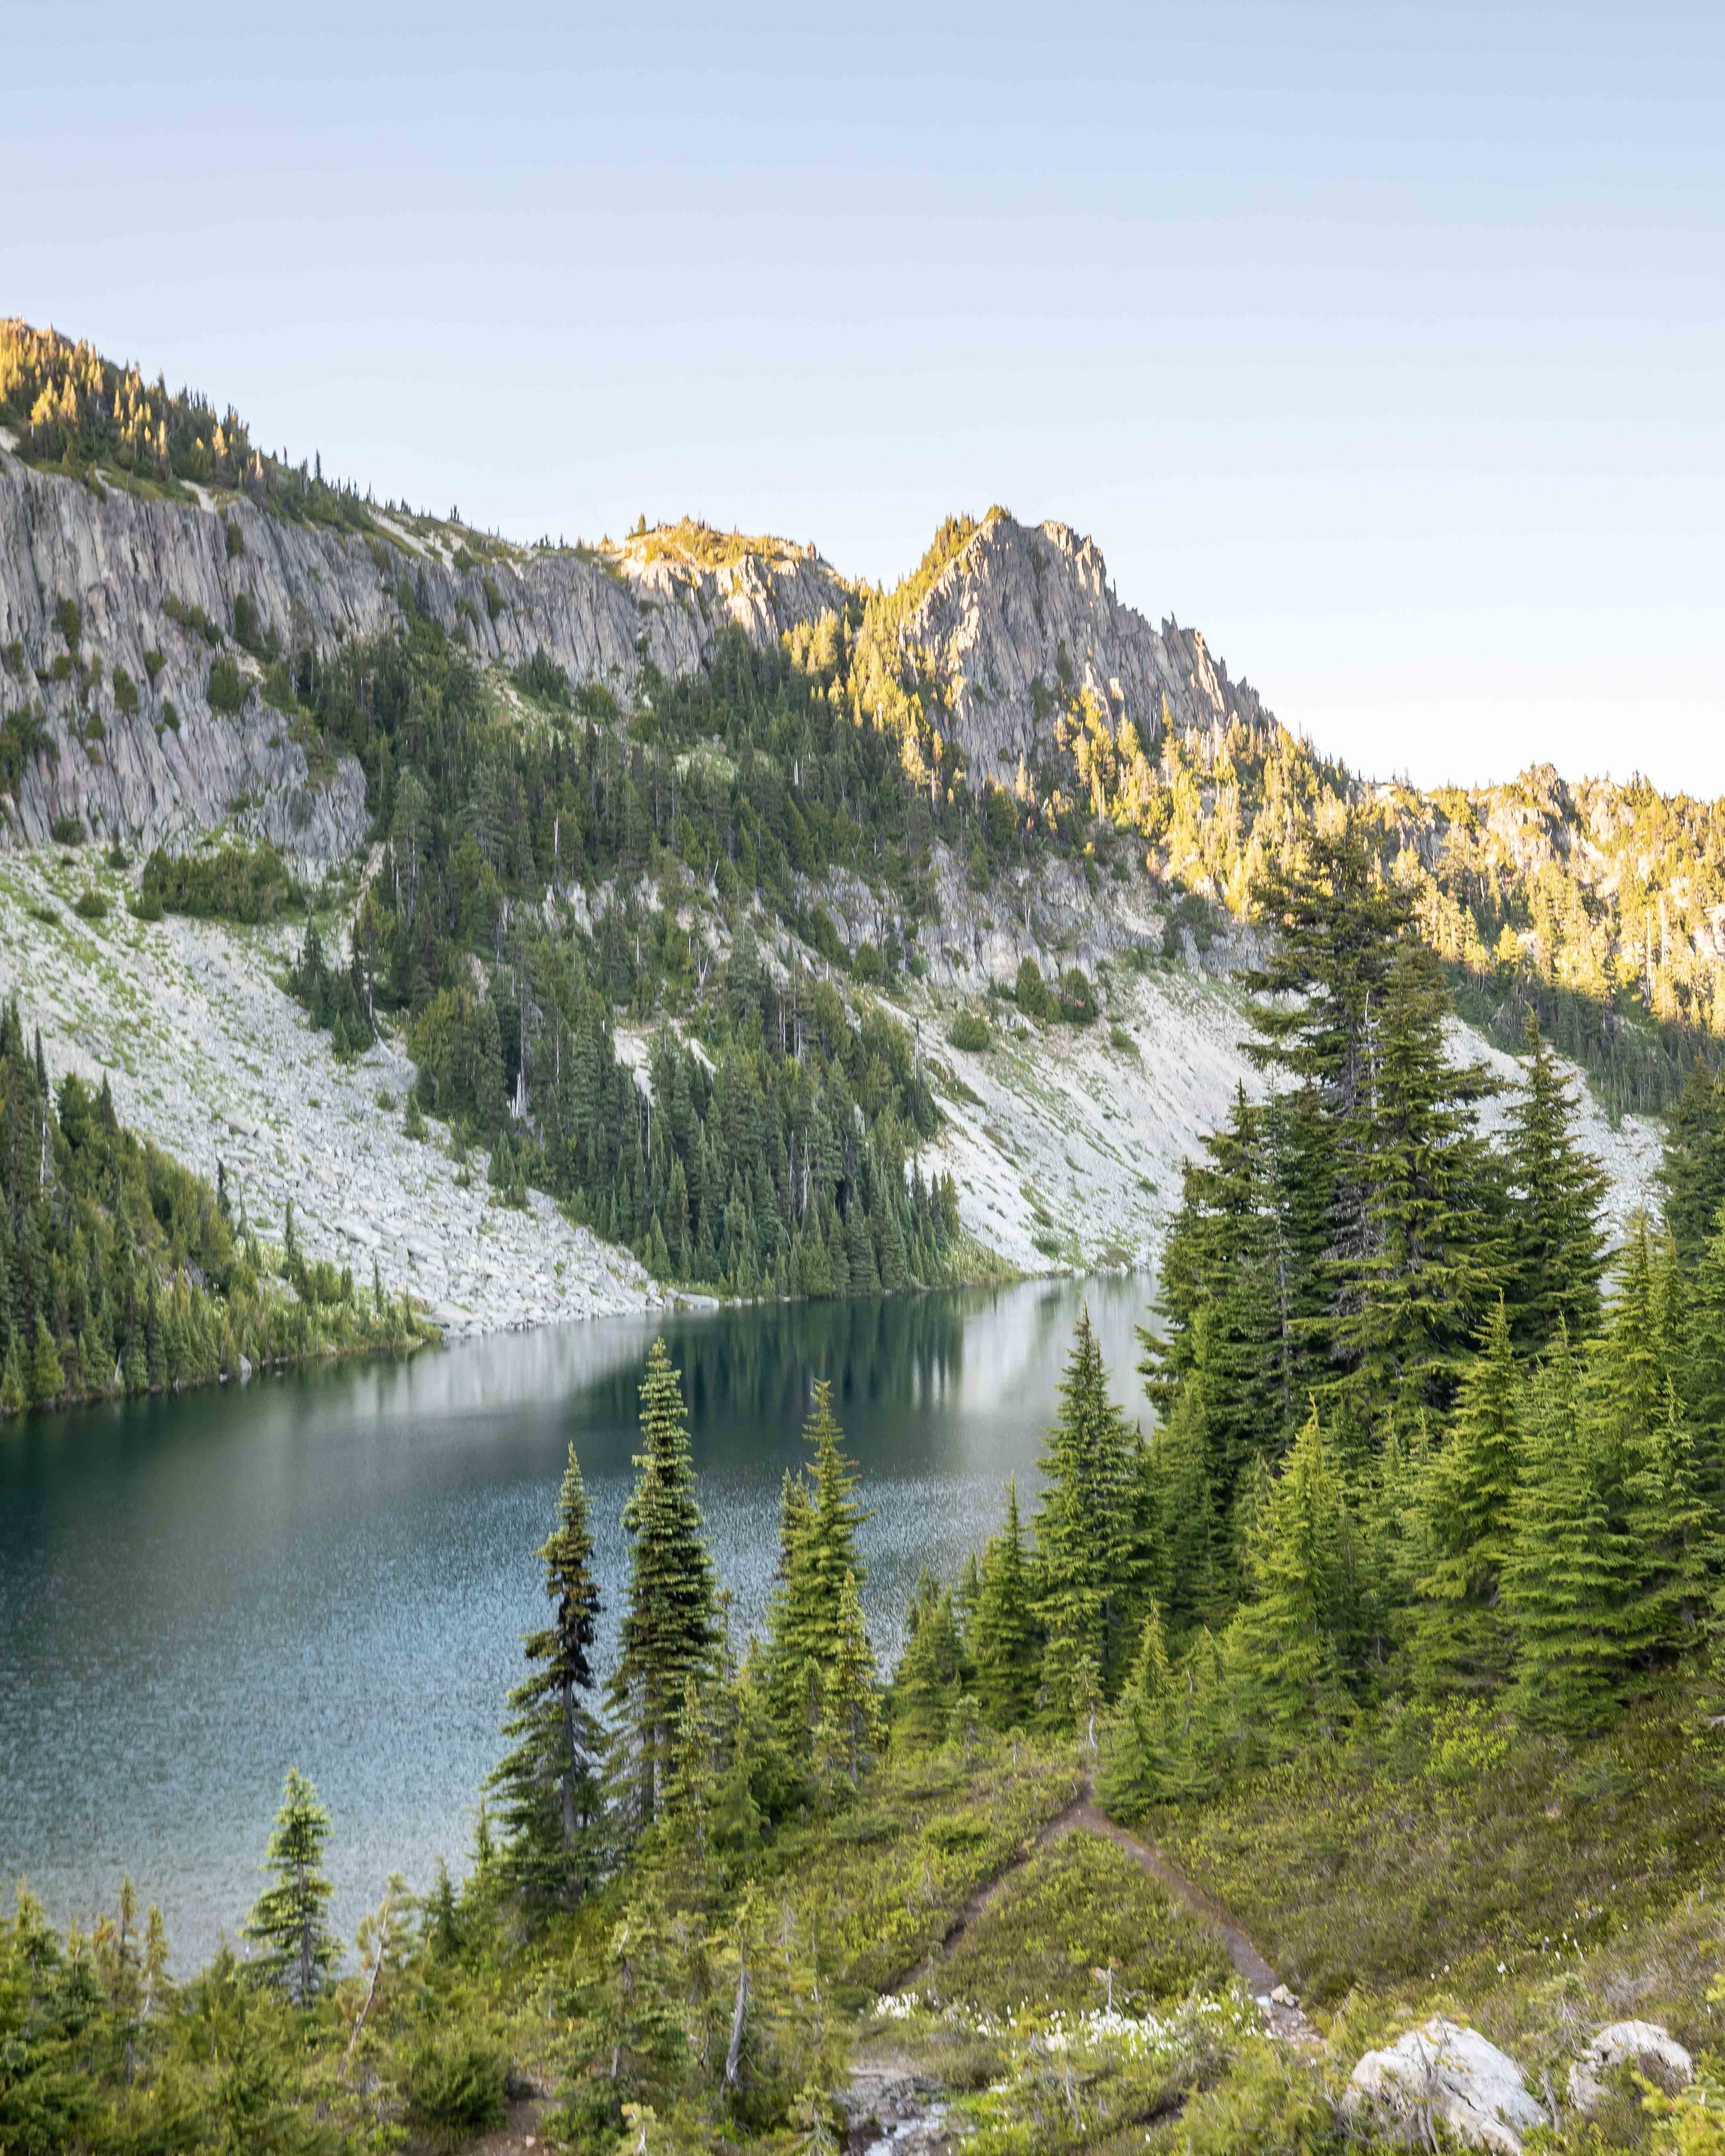 Eunice Lake - Tolmie Peak, Mount Rainier